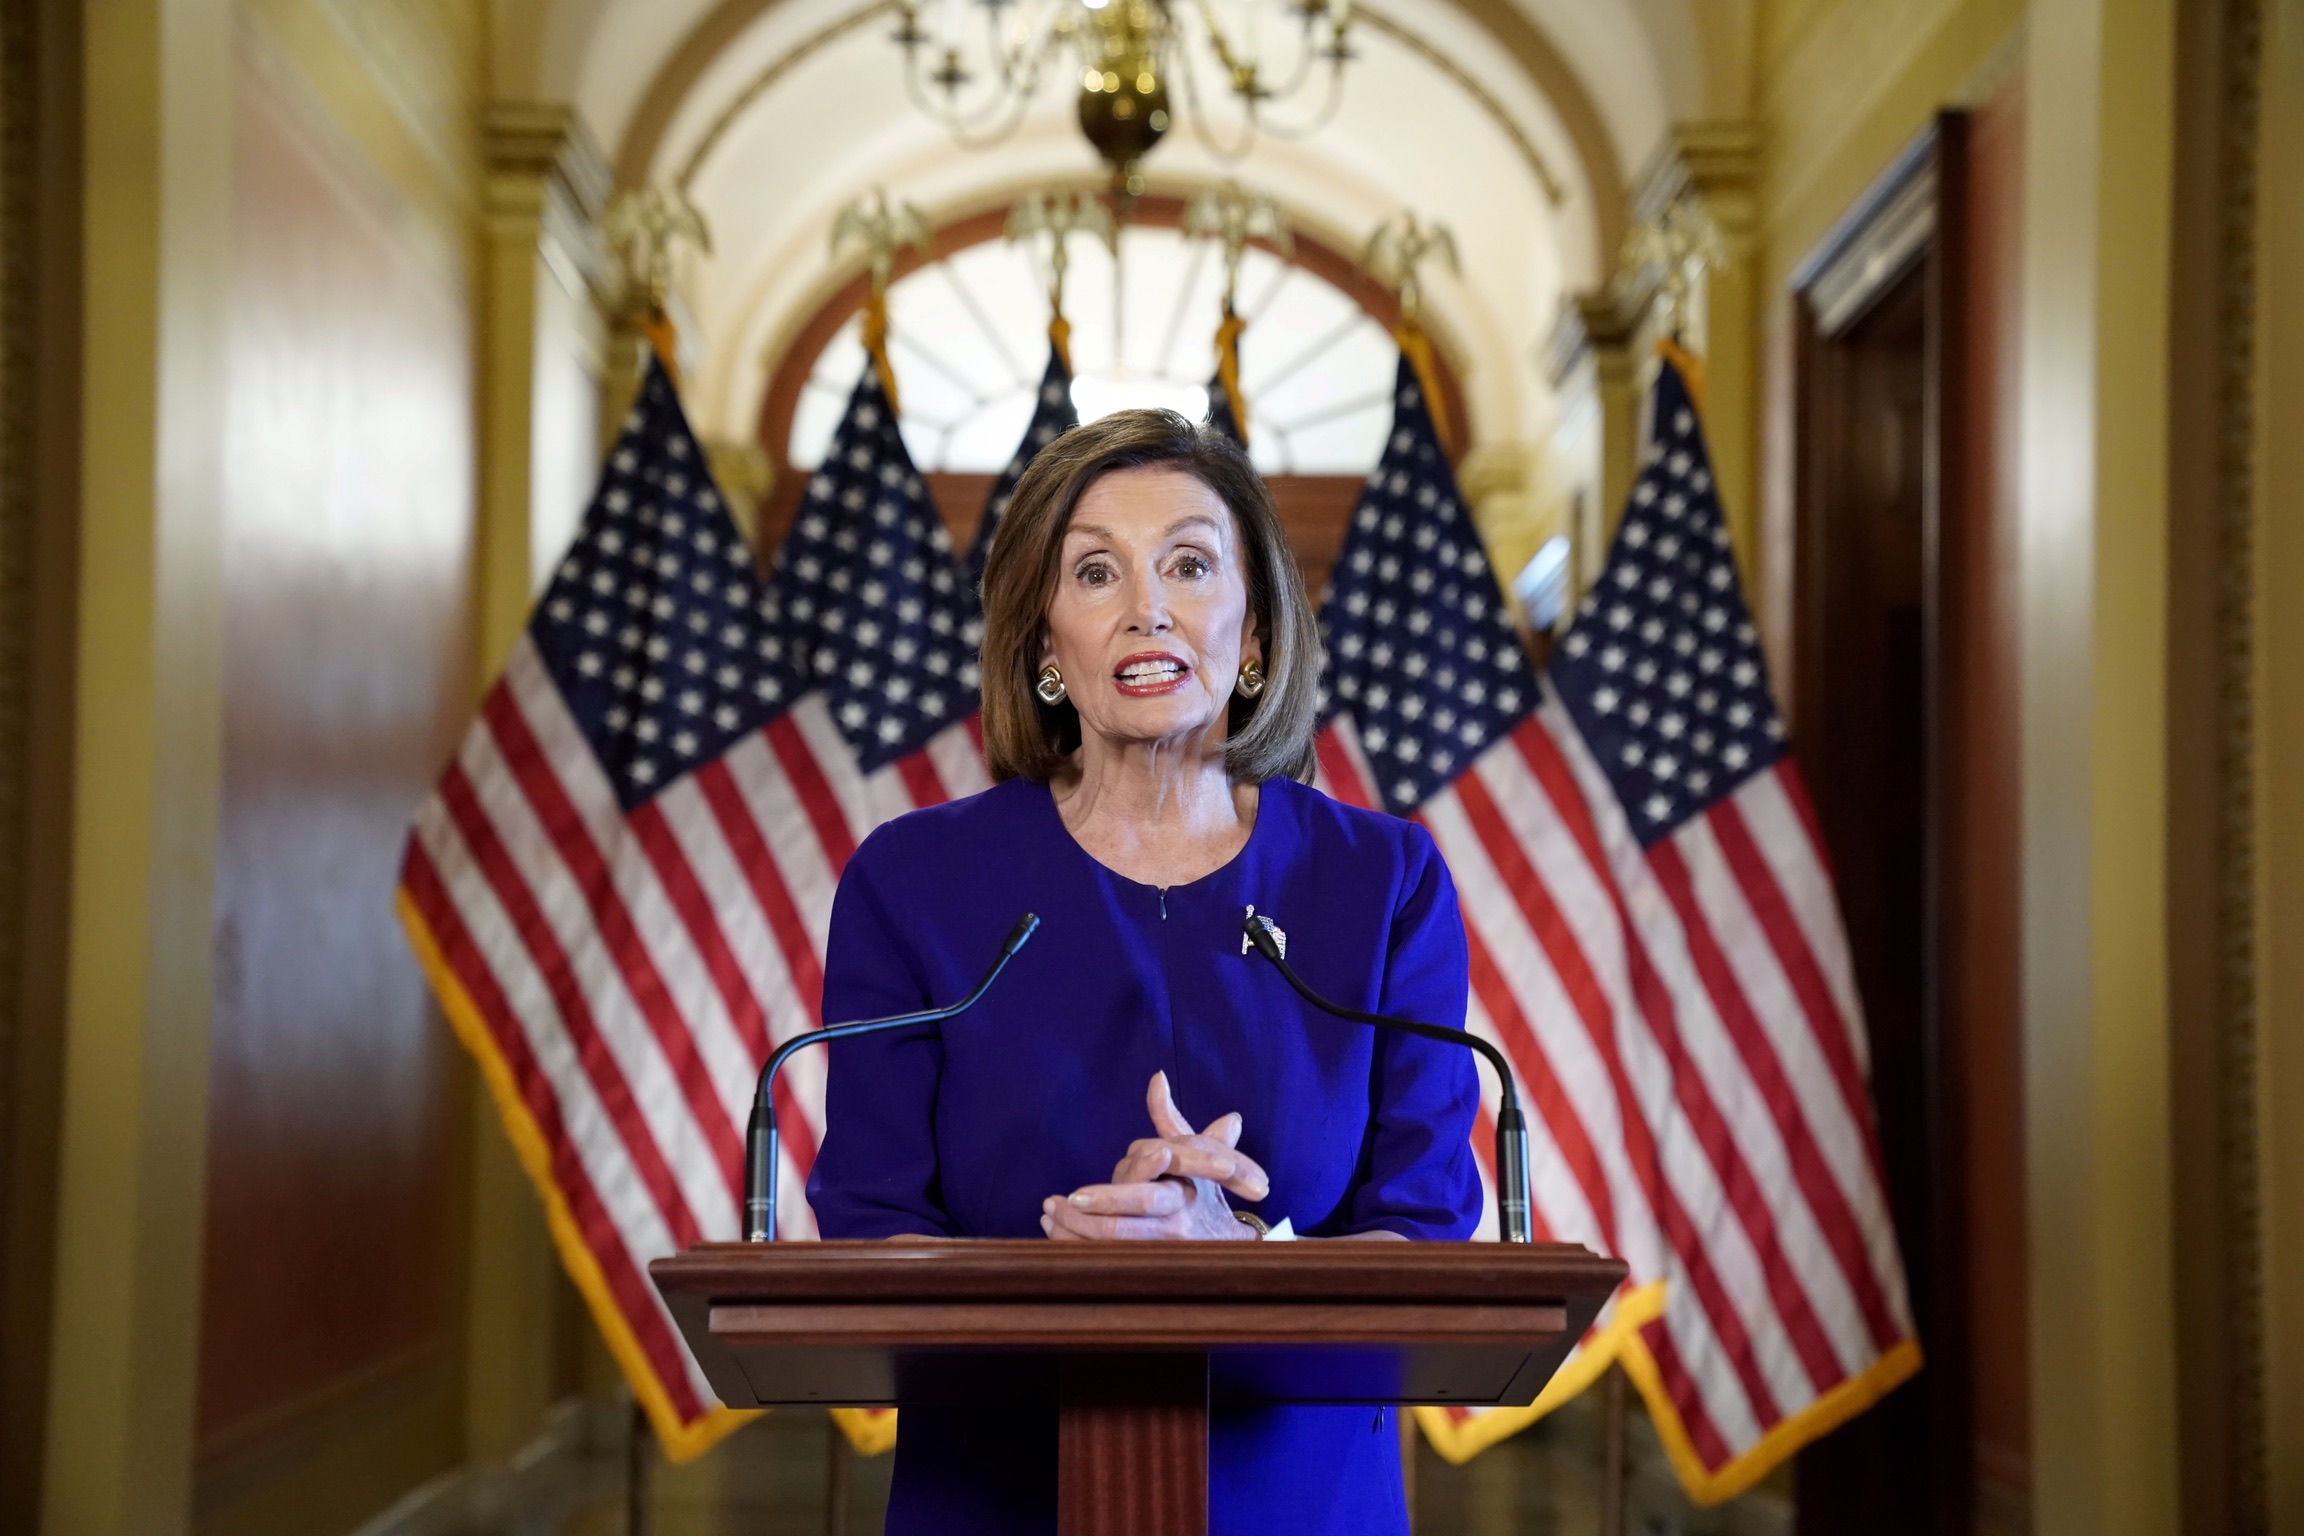 FILE PHOTO: House Speaker Nancy Pelosi (D-CA) announces the House of Representatives will launch a formal inquiry into the impeachment of U.S. President Donald Trump following a closed House Democratic caucus meeting at the U.S. Capitol in Washington, U.S., September 24, 2019. REUTERS/Kevin Lamarque/File Photo